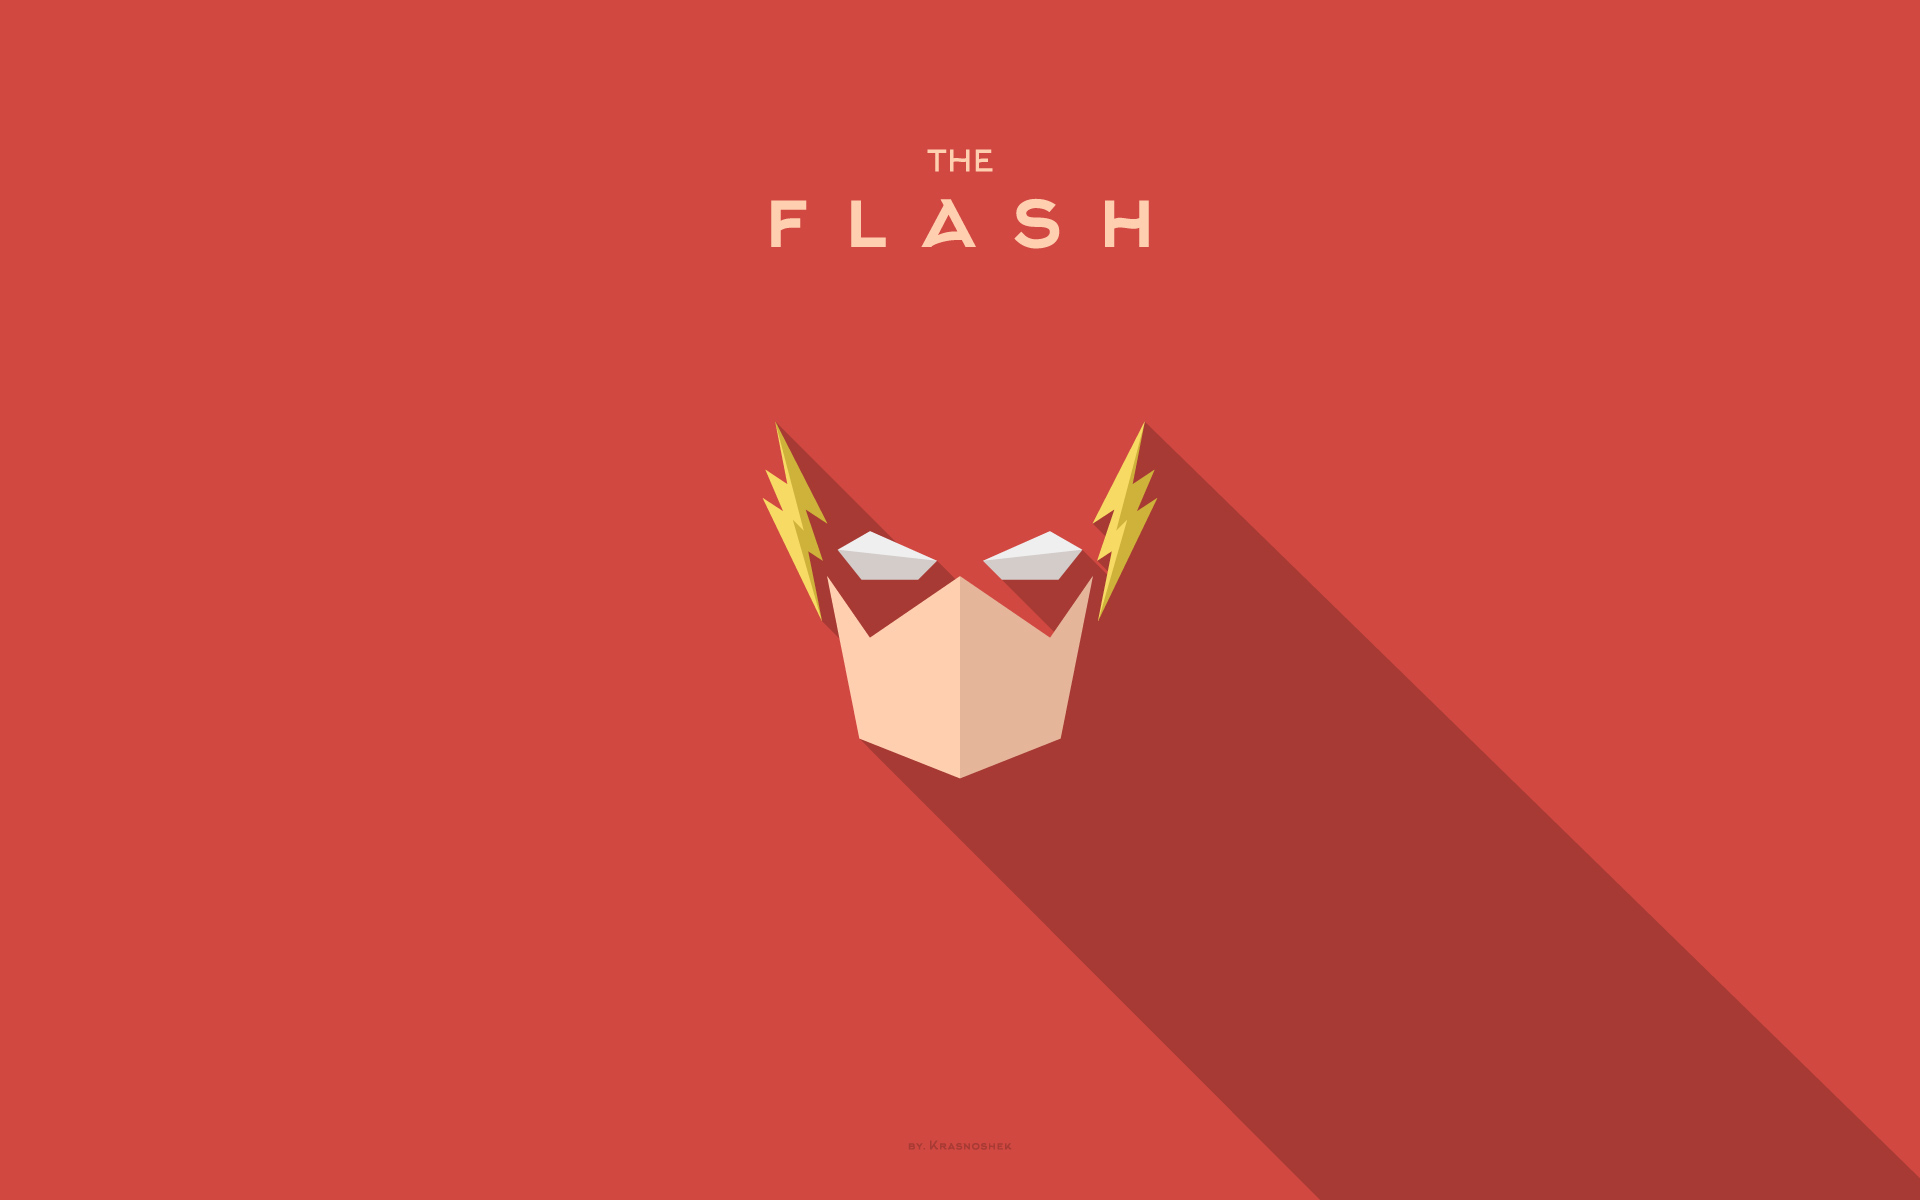 Awesome Flash wallpaper Link to more sizes in comments iimgurcom 1920x1200